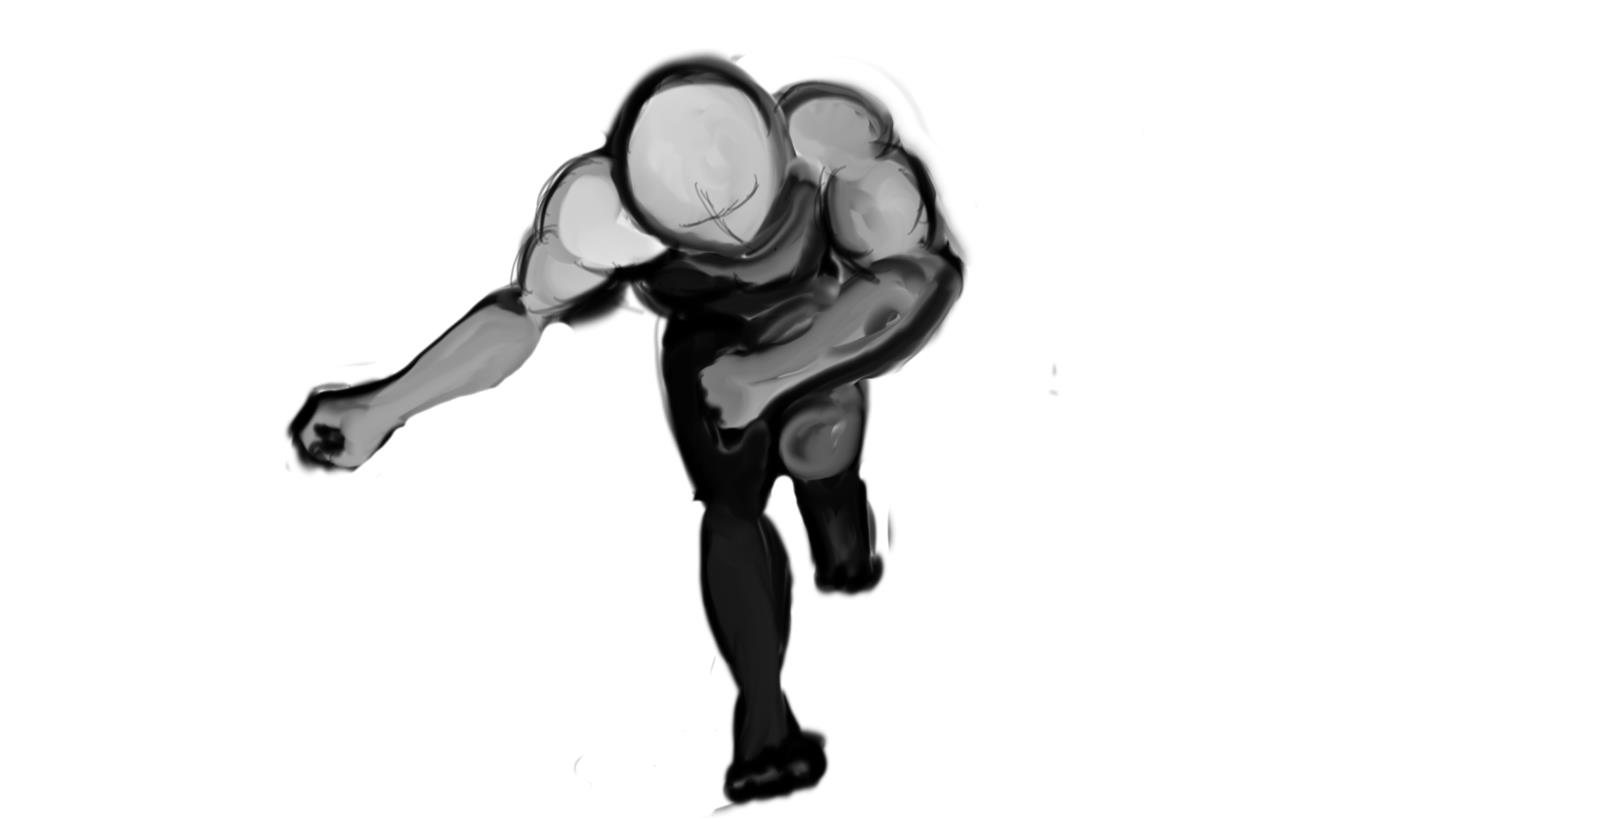 form in motion study, looking for feedback